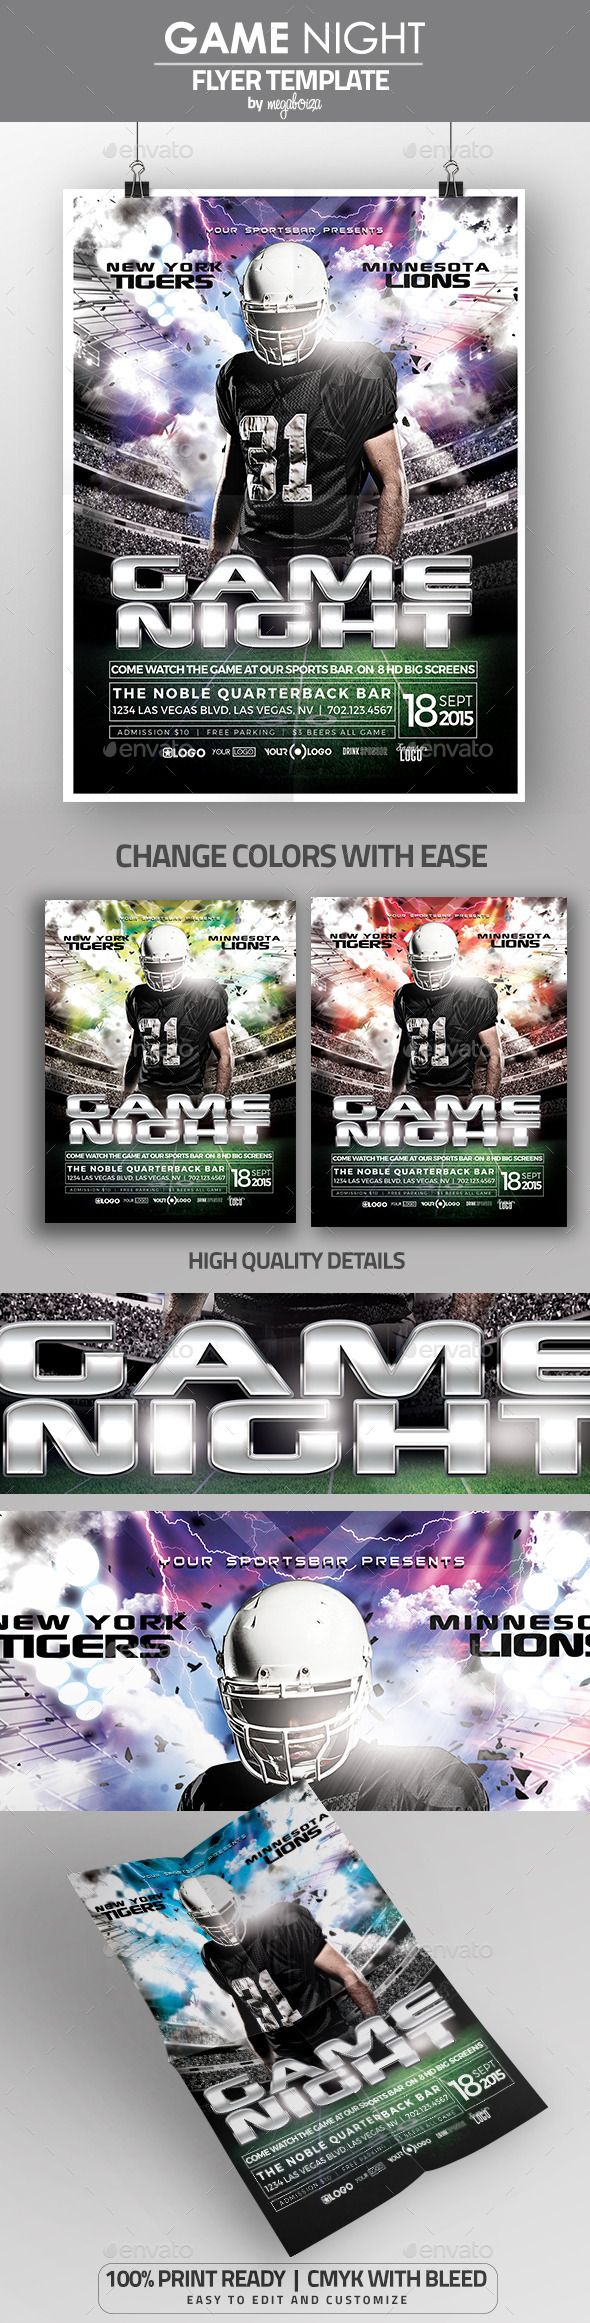 Game Night Football Flyer / Poster Template - Sports Events